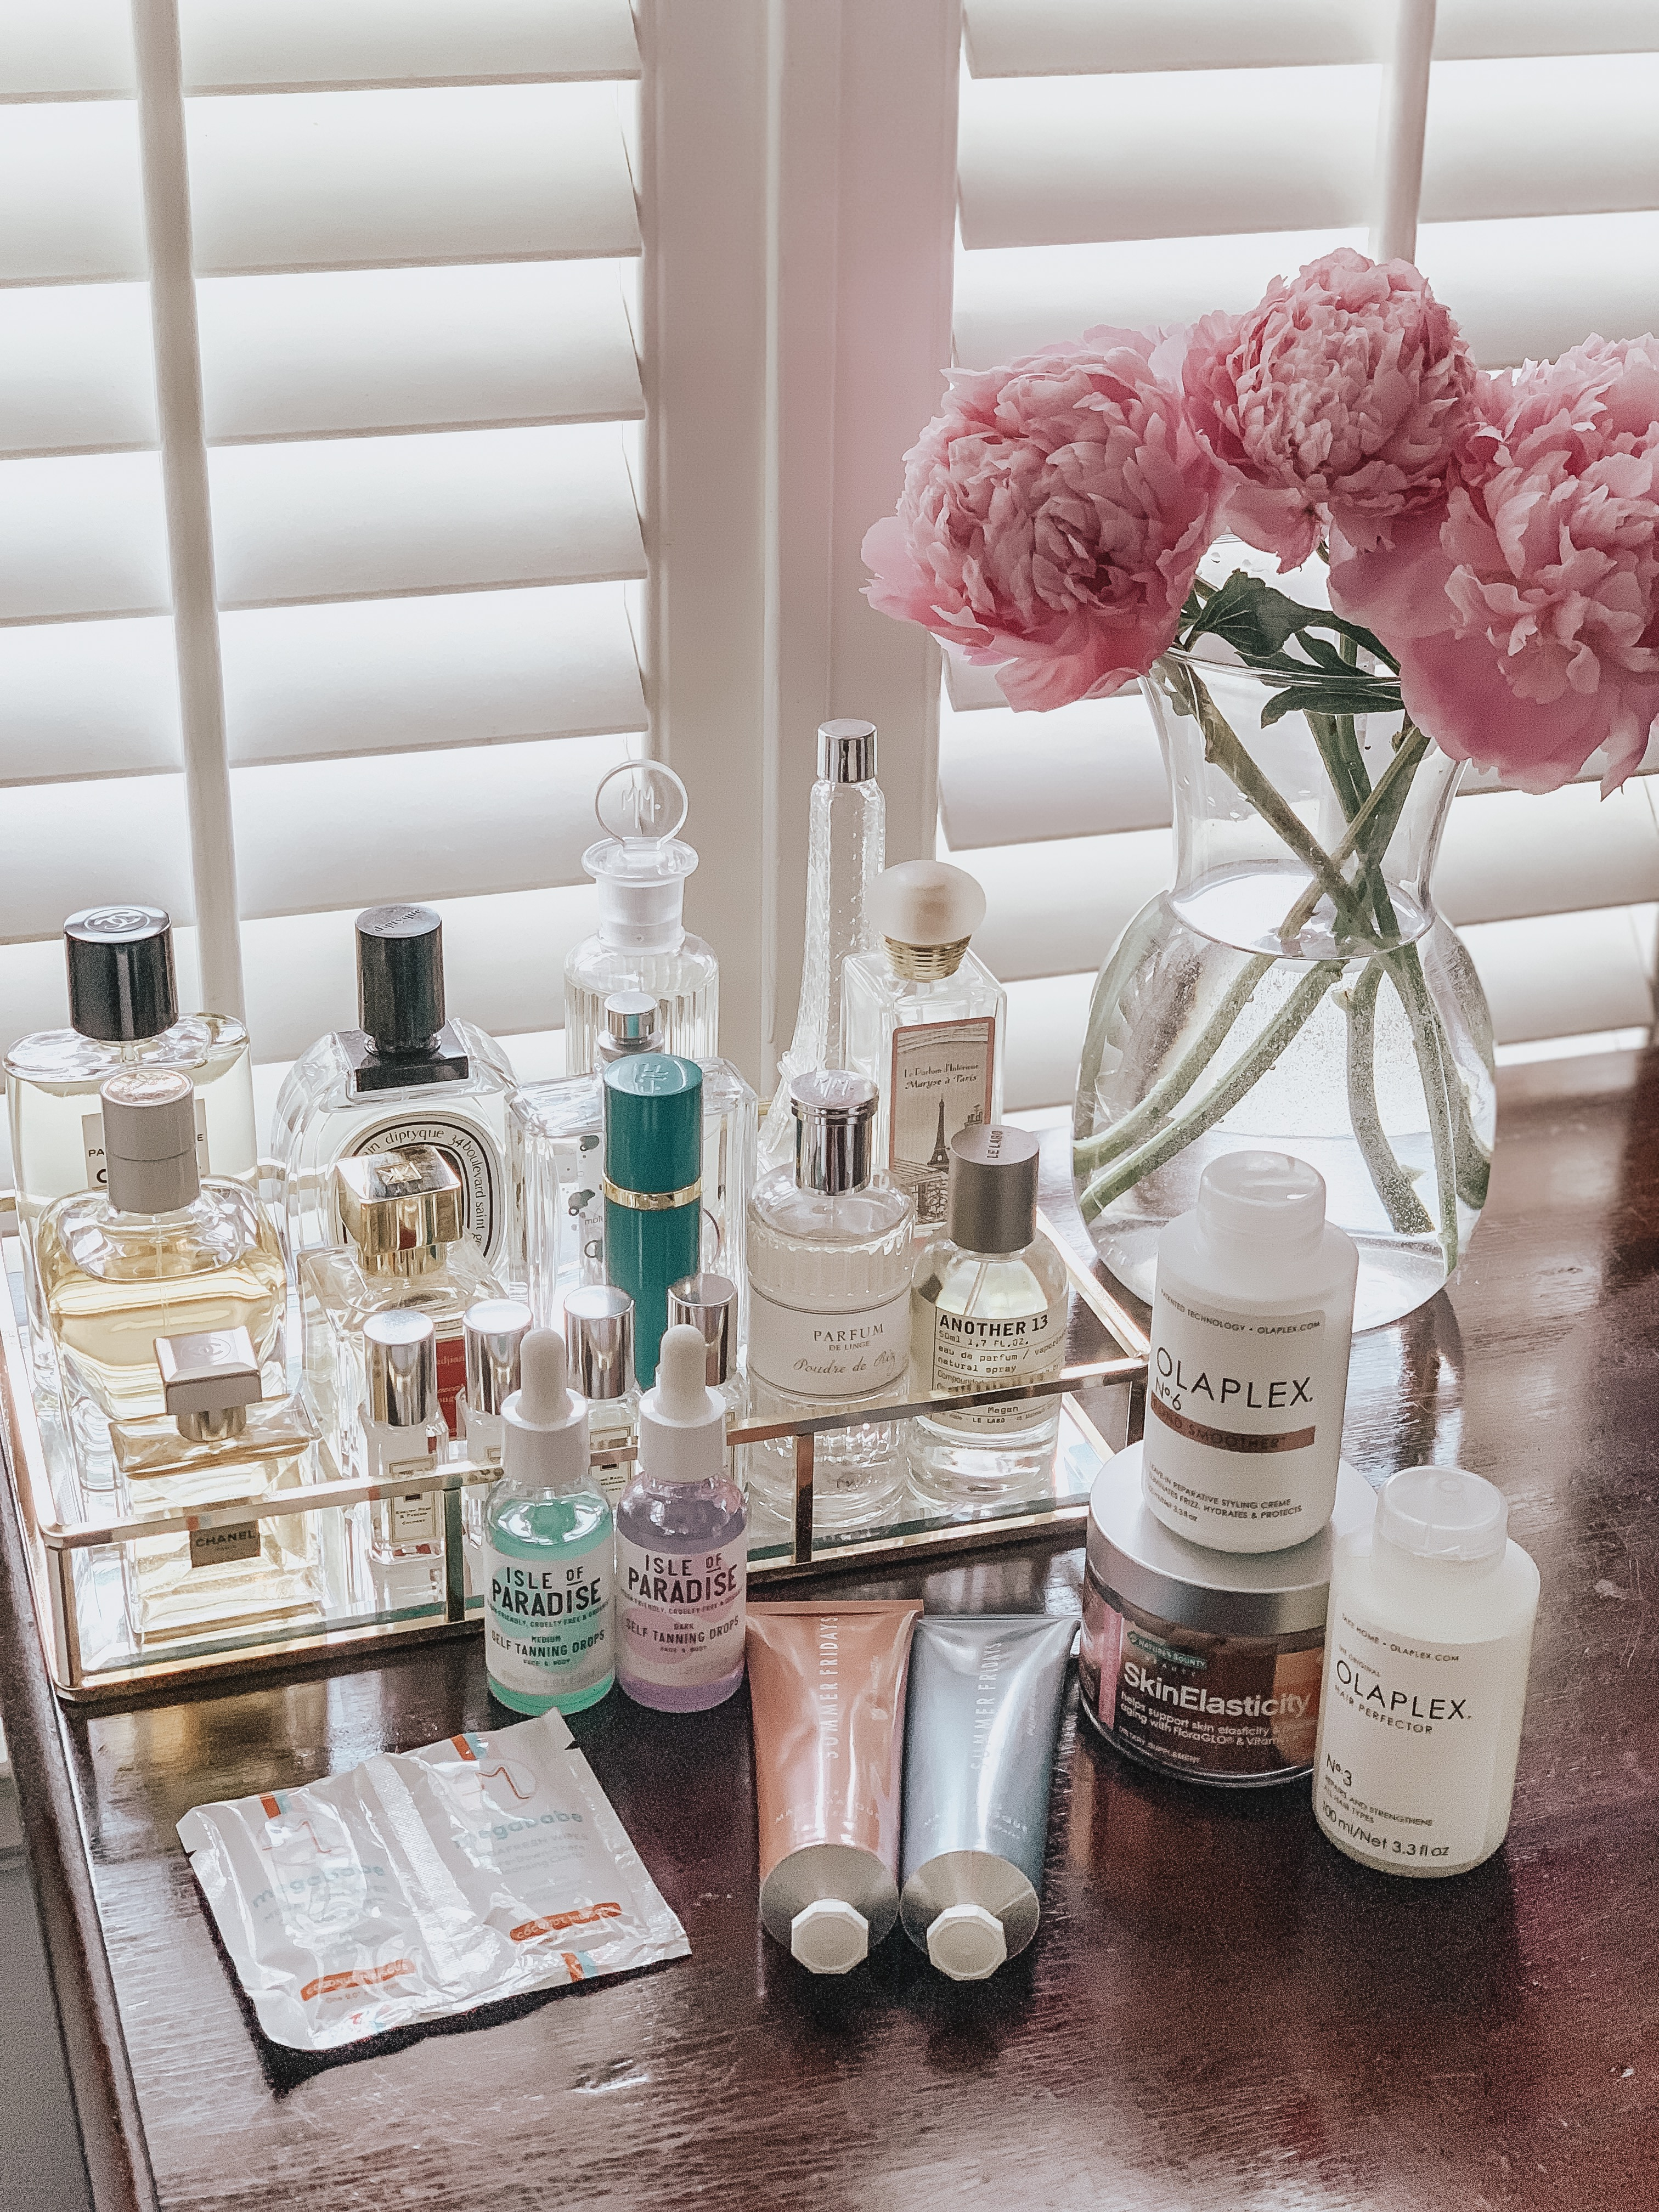 My New Summer Beauty & Makeup Purchases + Updated Makeup